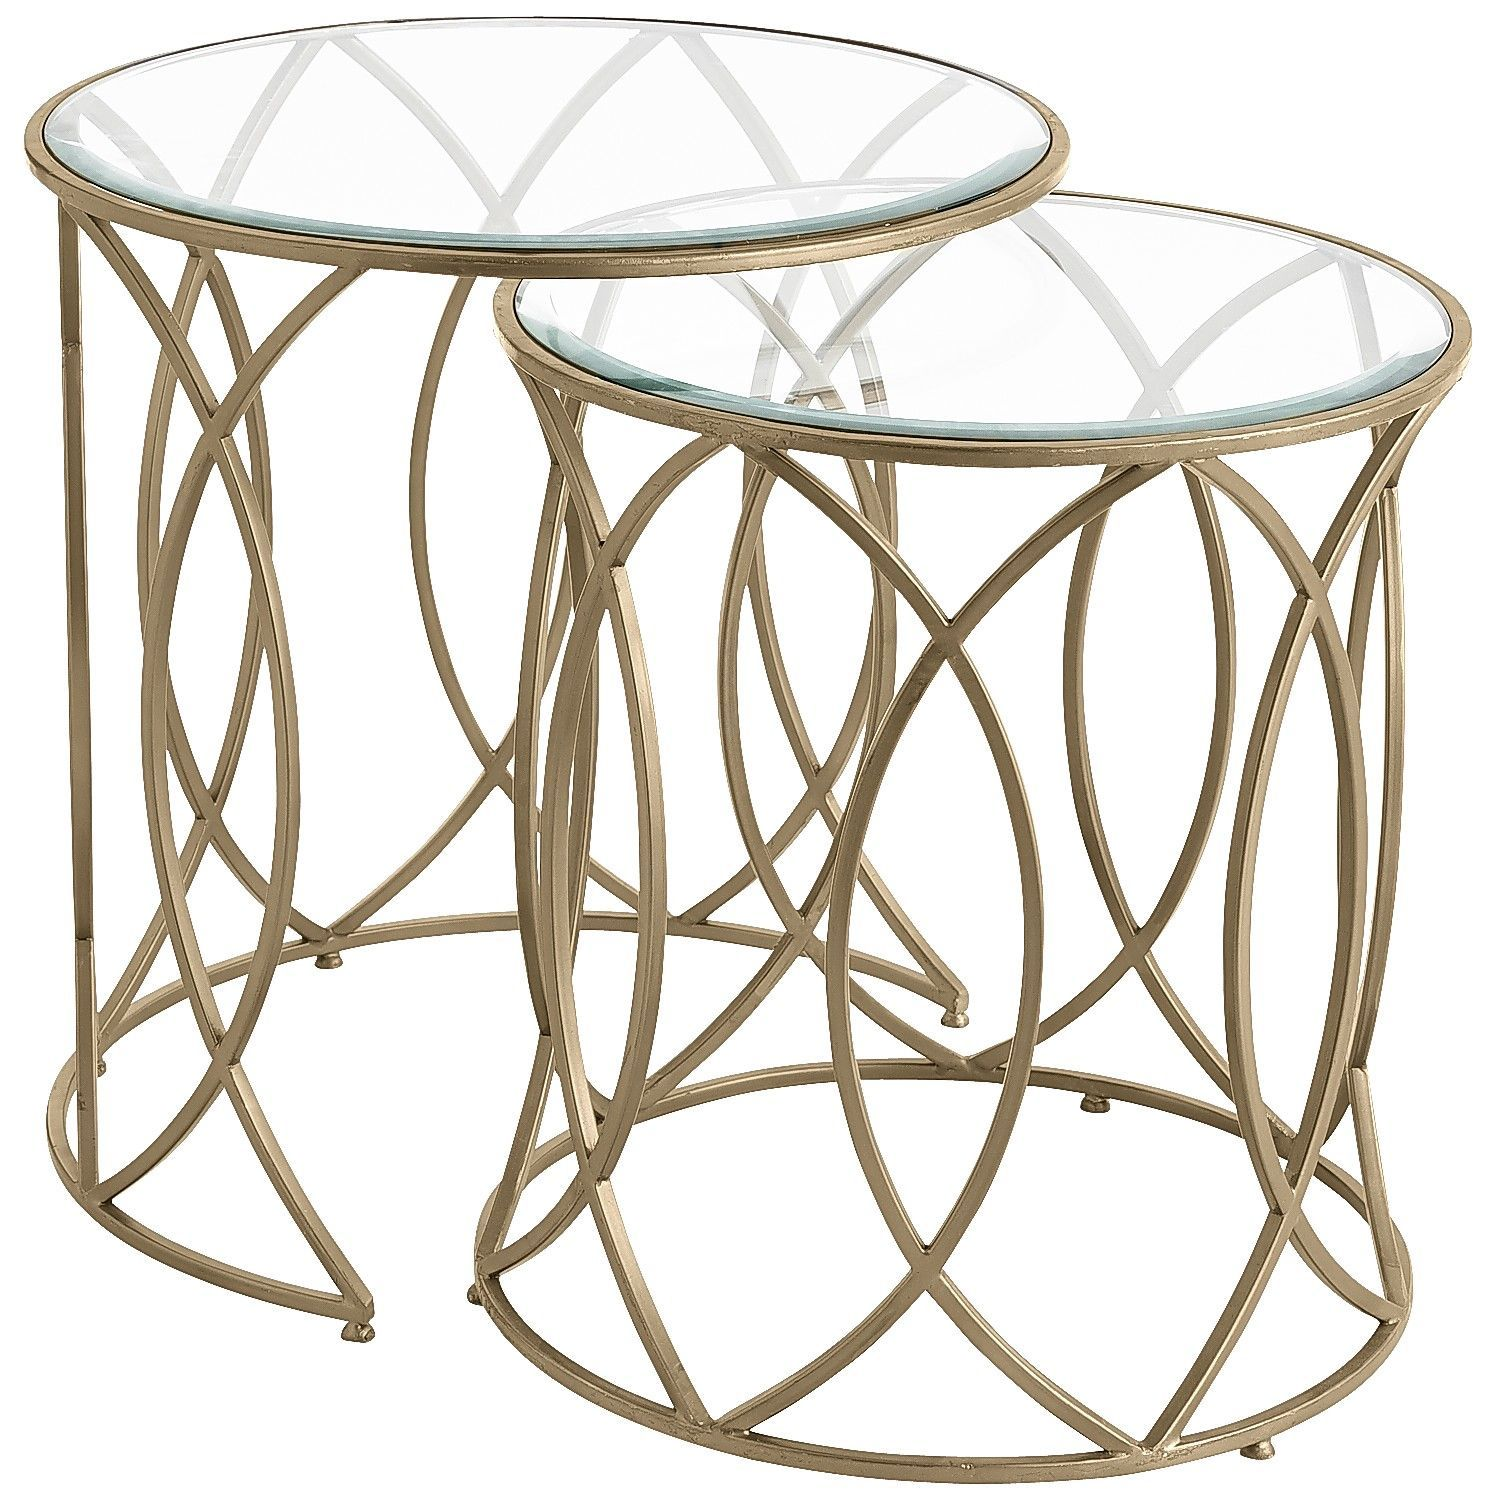 elana bronze iron round nesting tables home room essentials stacking accent table living side pier imports hampton bay patio set tablecloths handmade wood end floor edging tipton